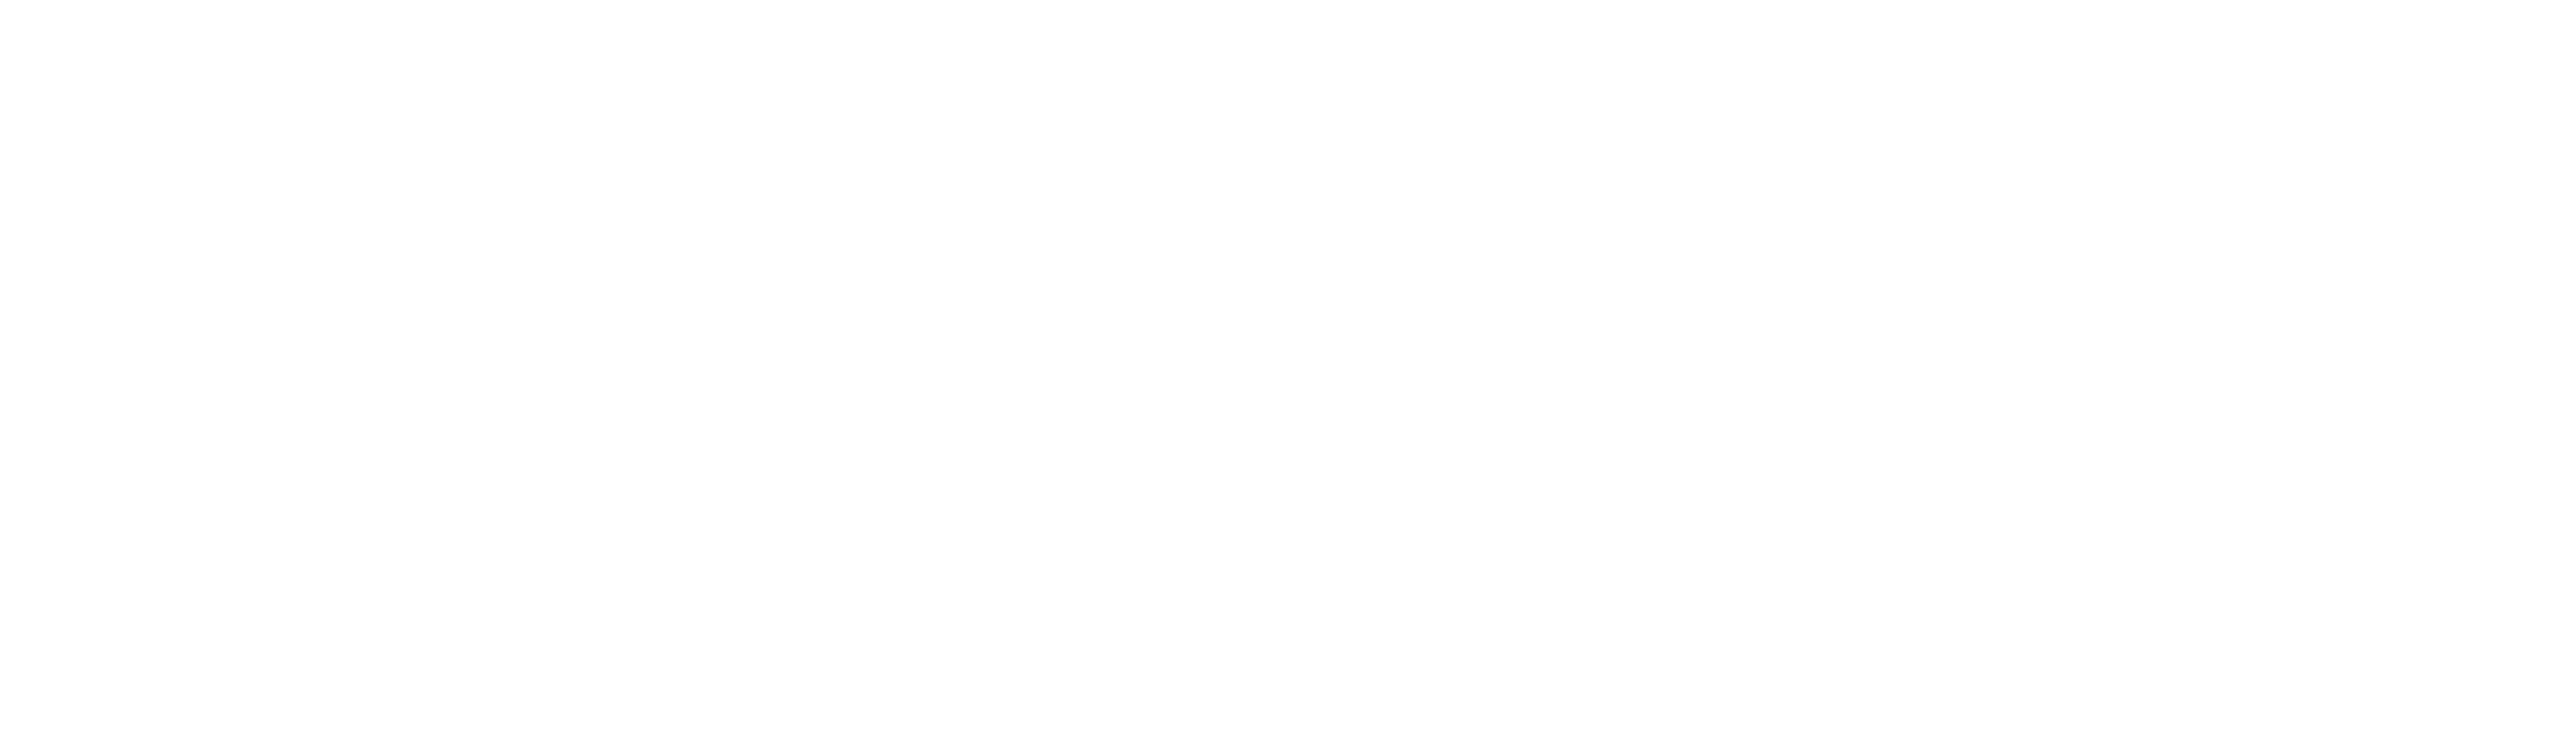 Candlewood Valley Heating Air Conditioning Llc Air Conditioner